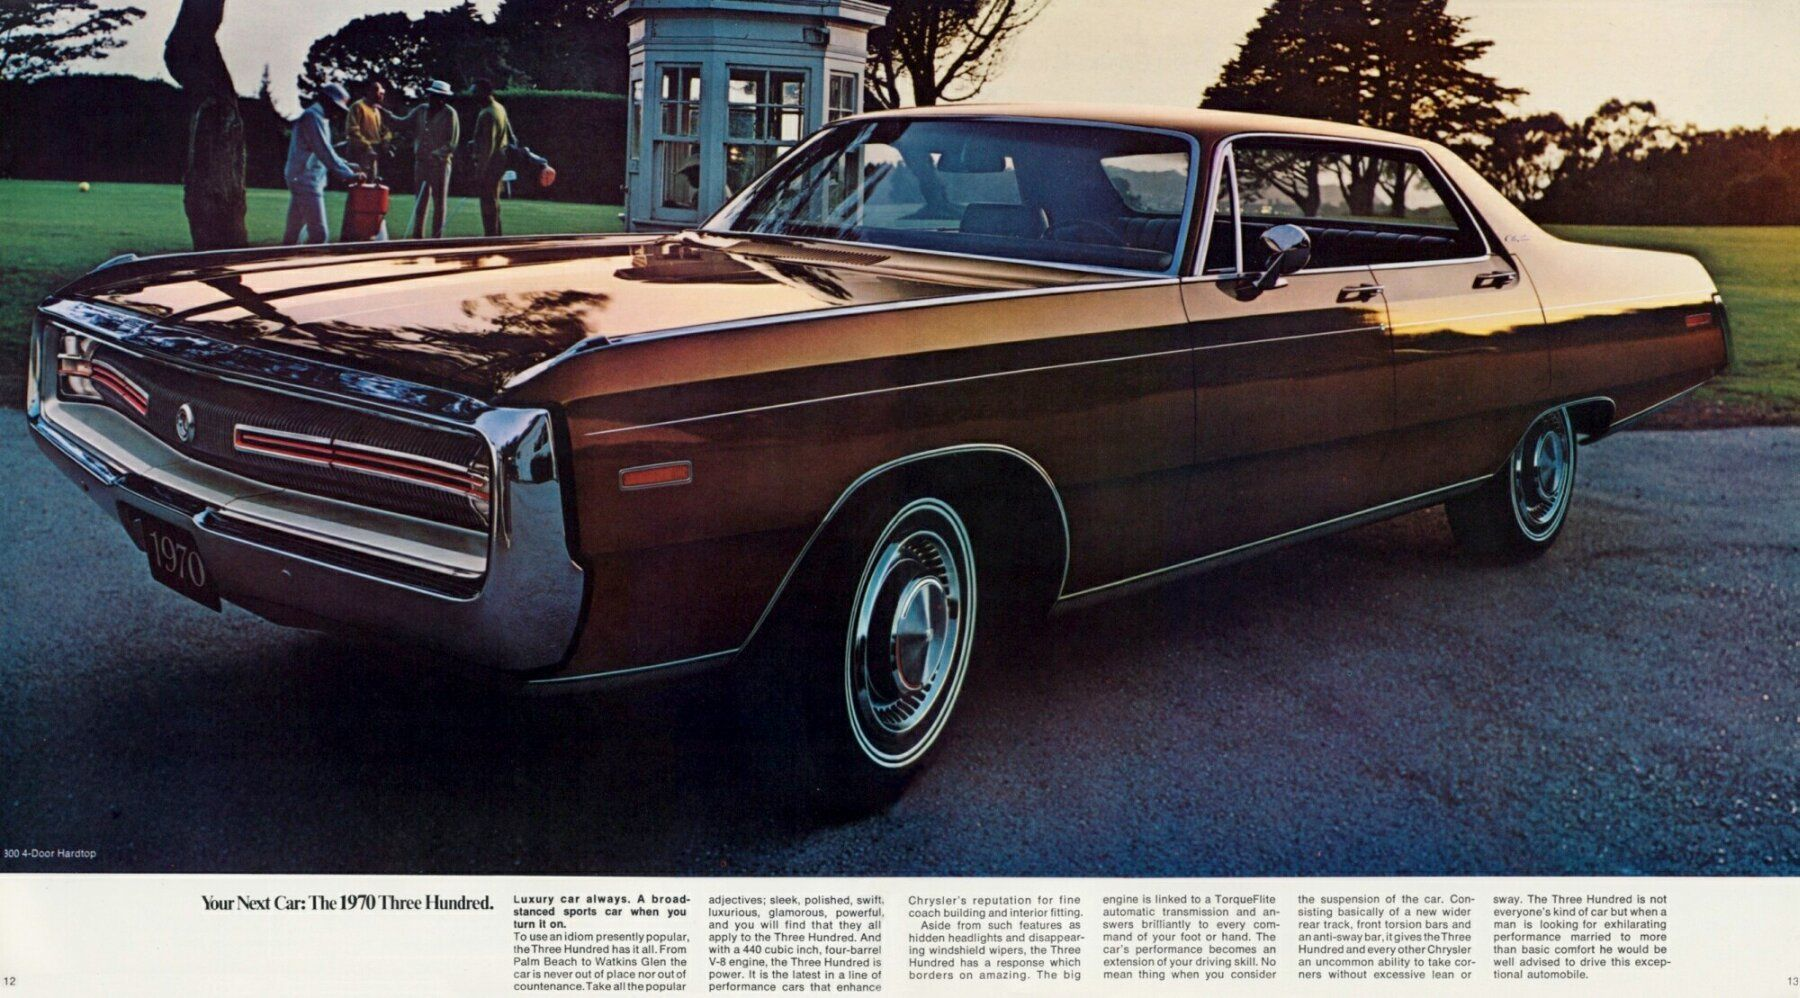 1970 Chrysler With Images Chrysler Imperial Chrysler 300